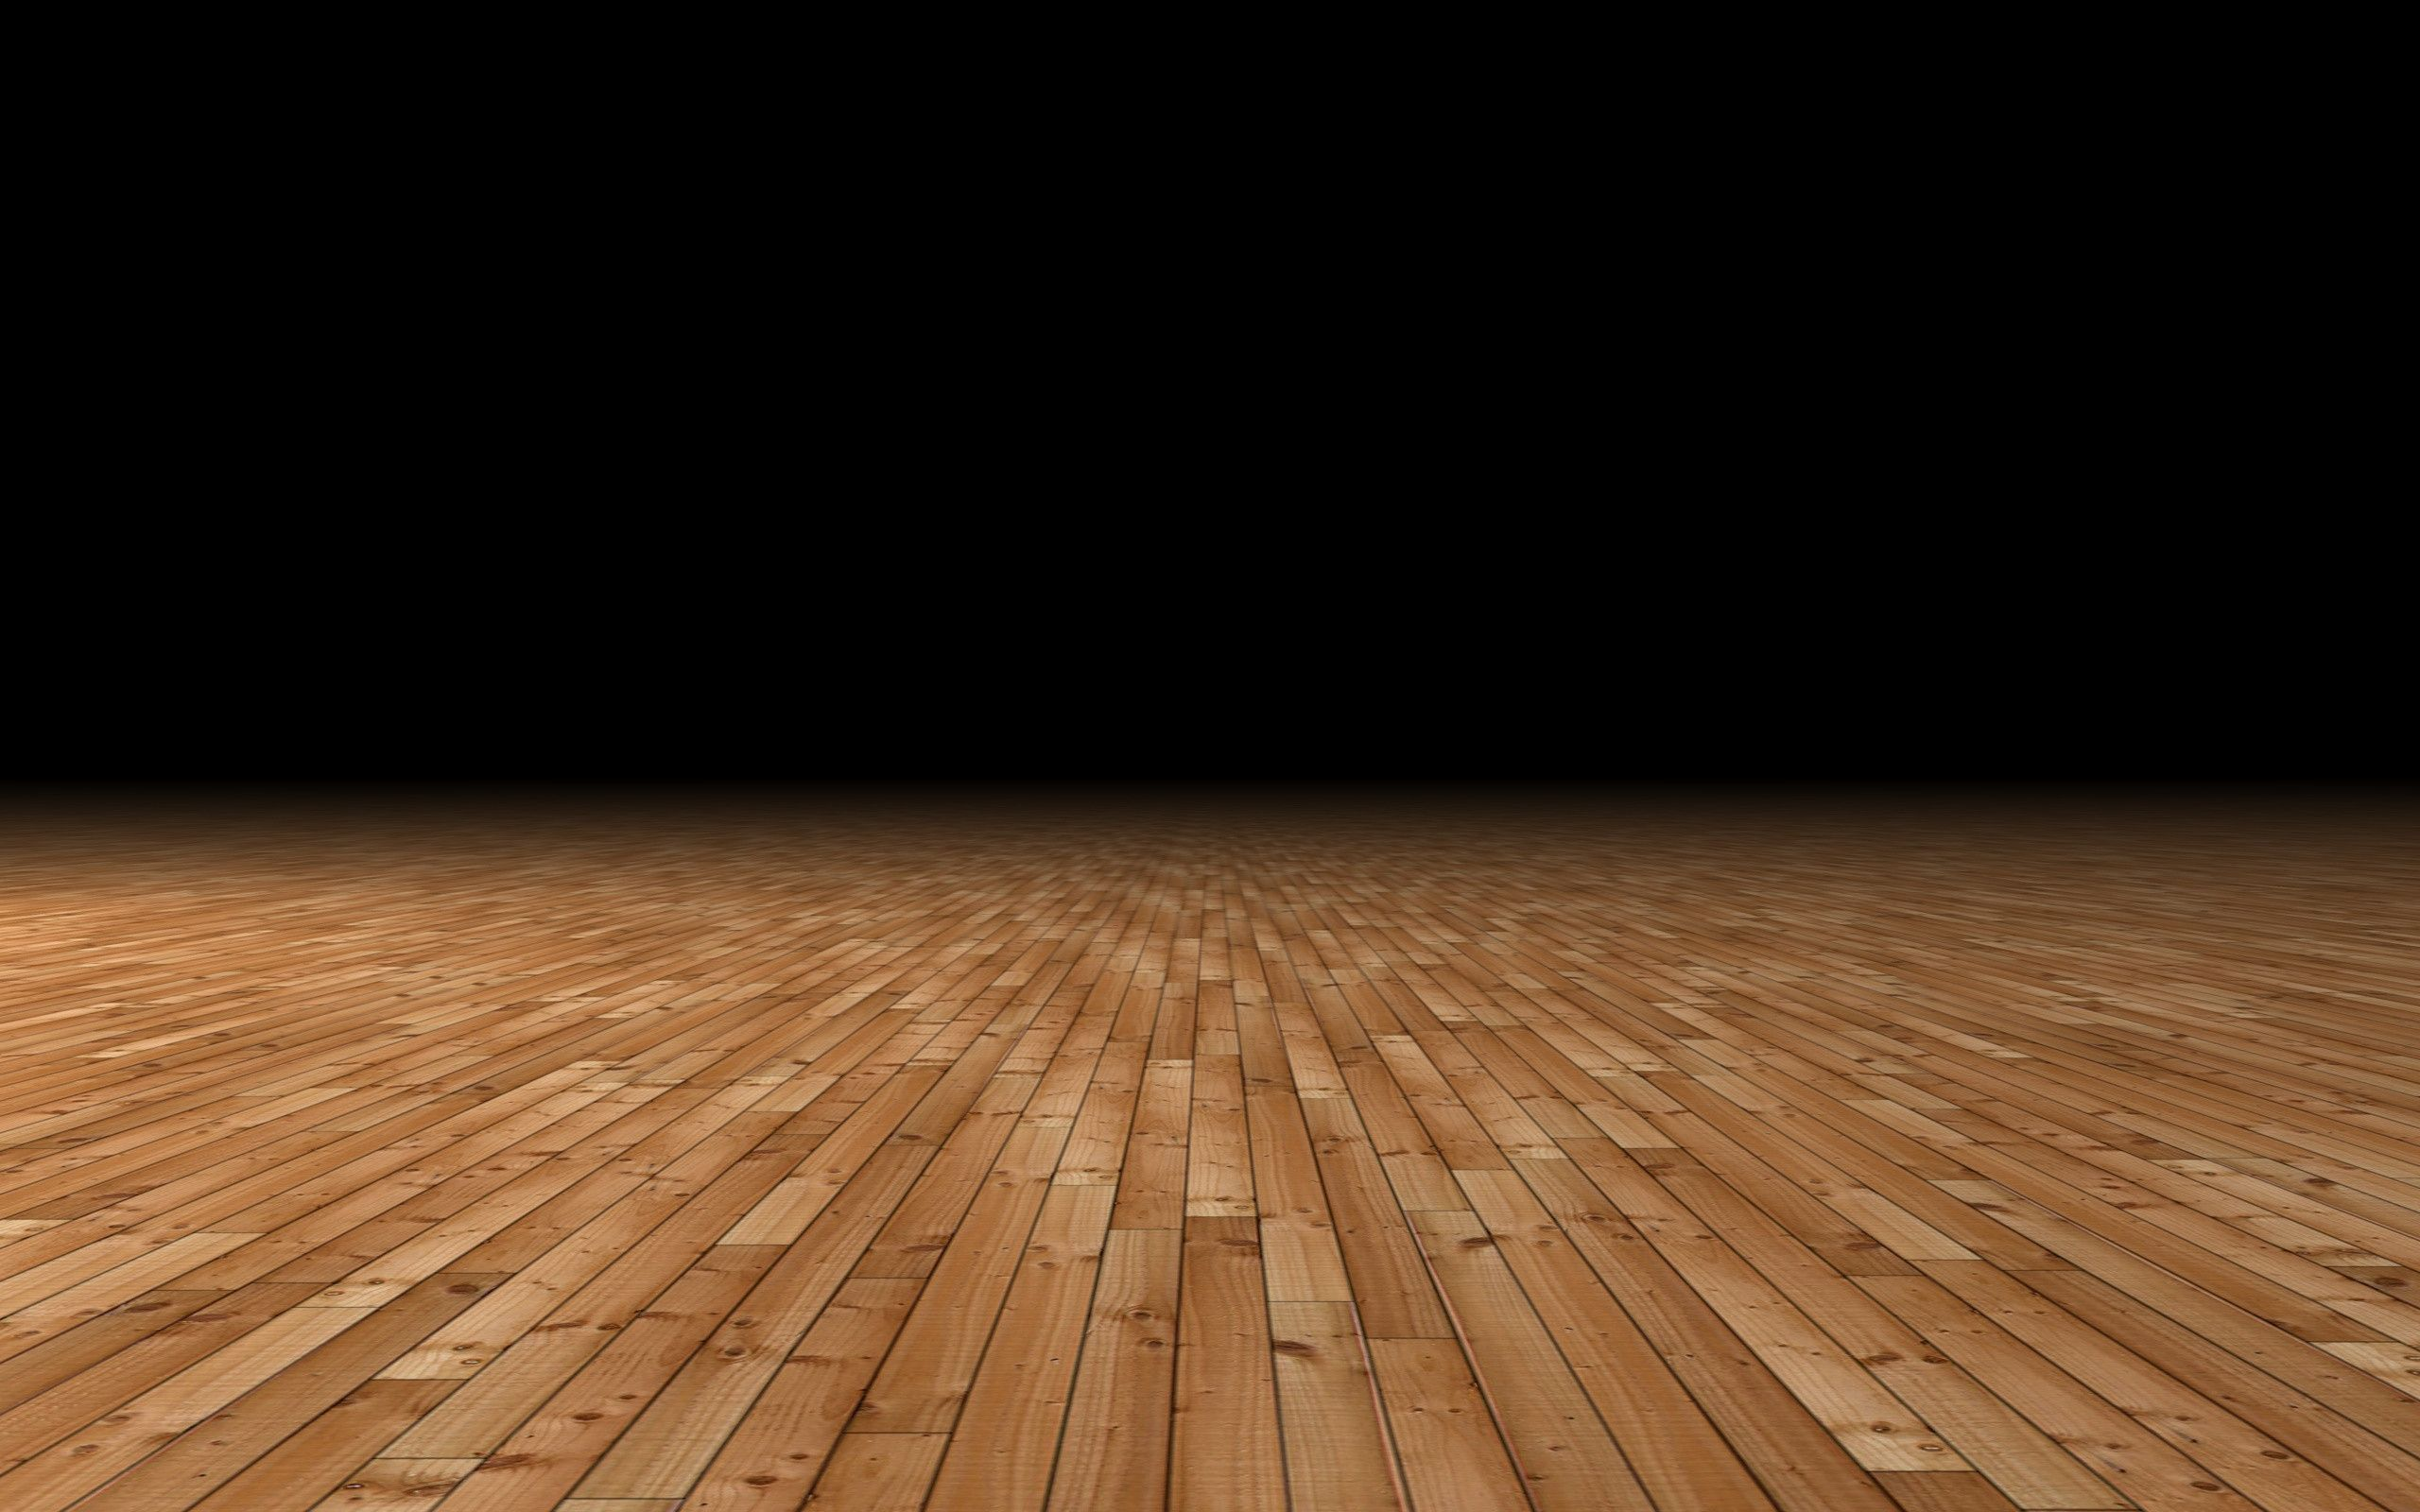 Basketball Court Wallpapers - Wallpaper Cave - Basketball Court PNG HD